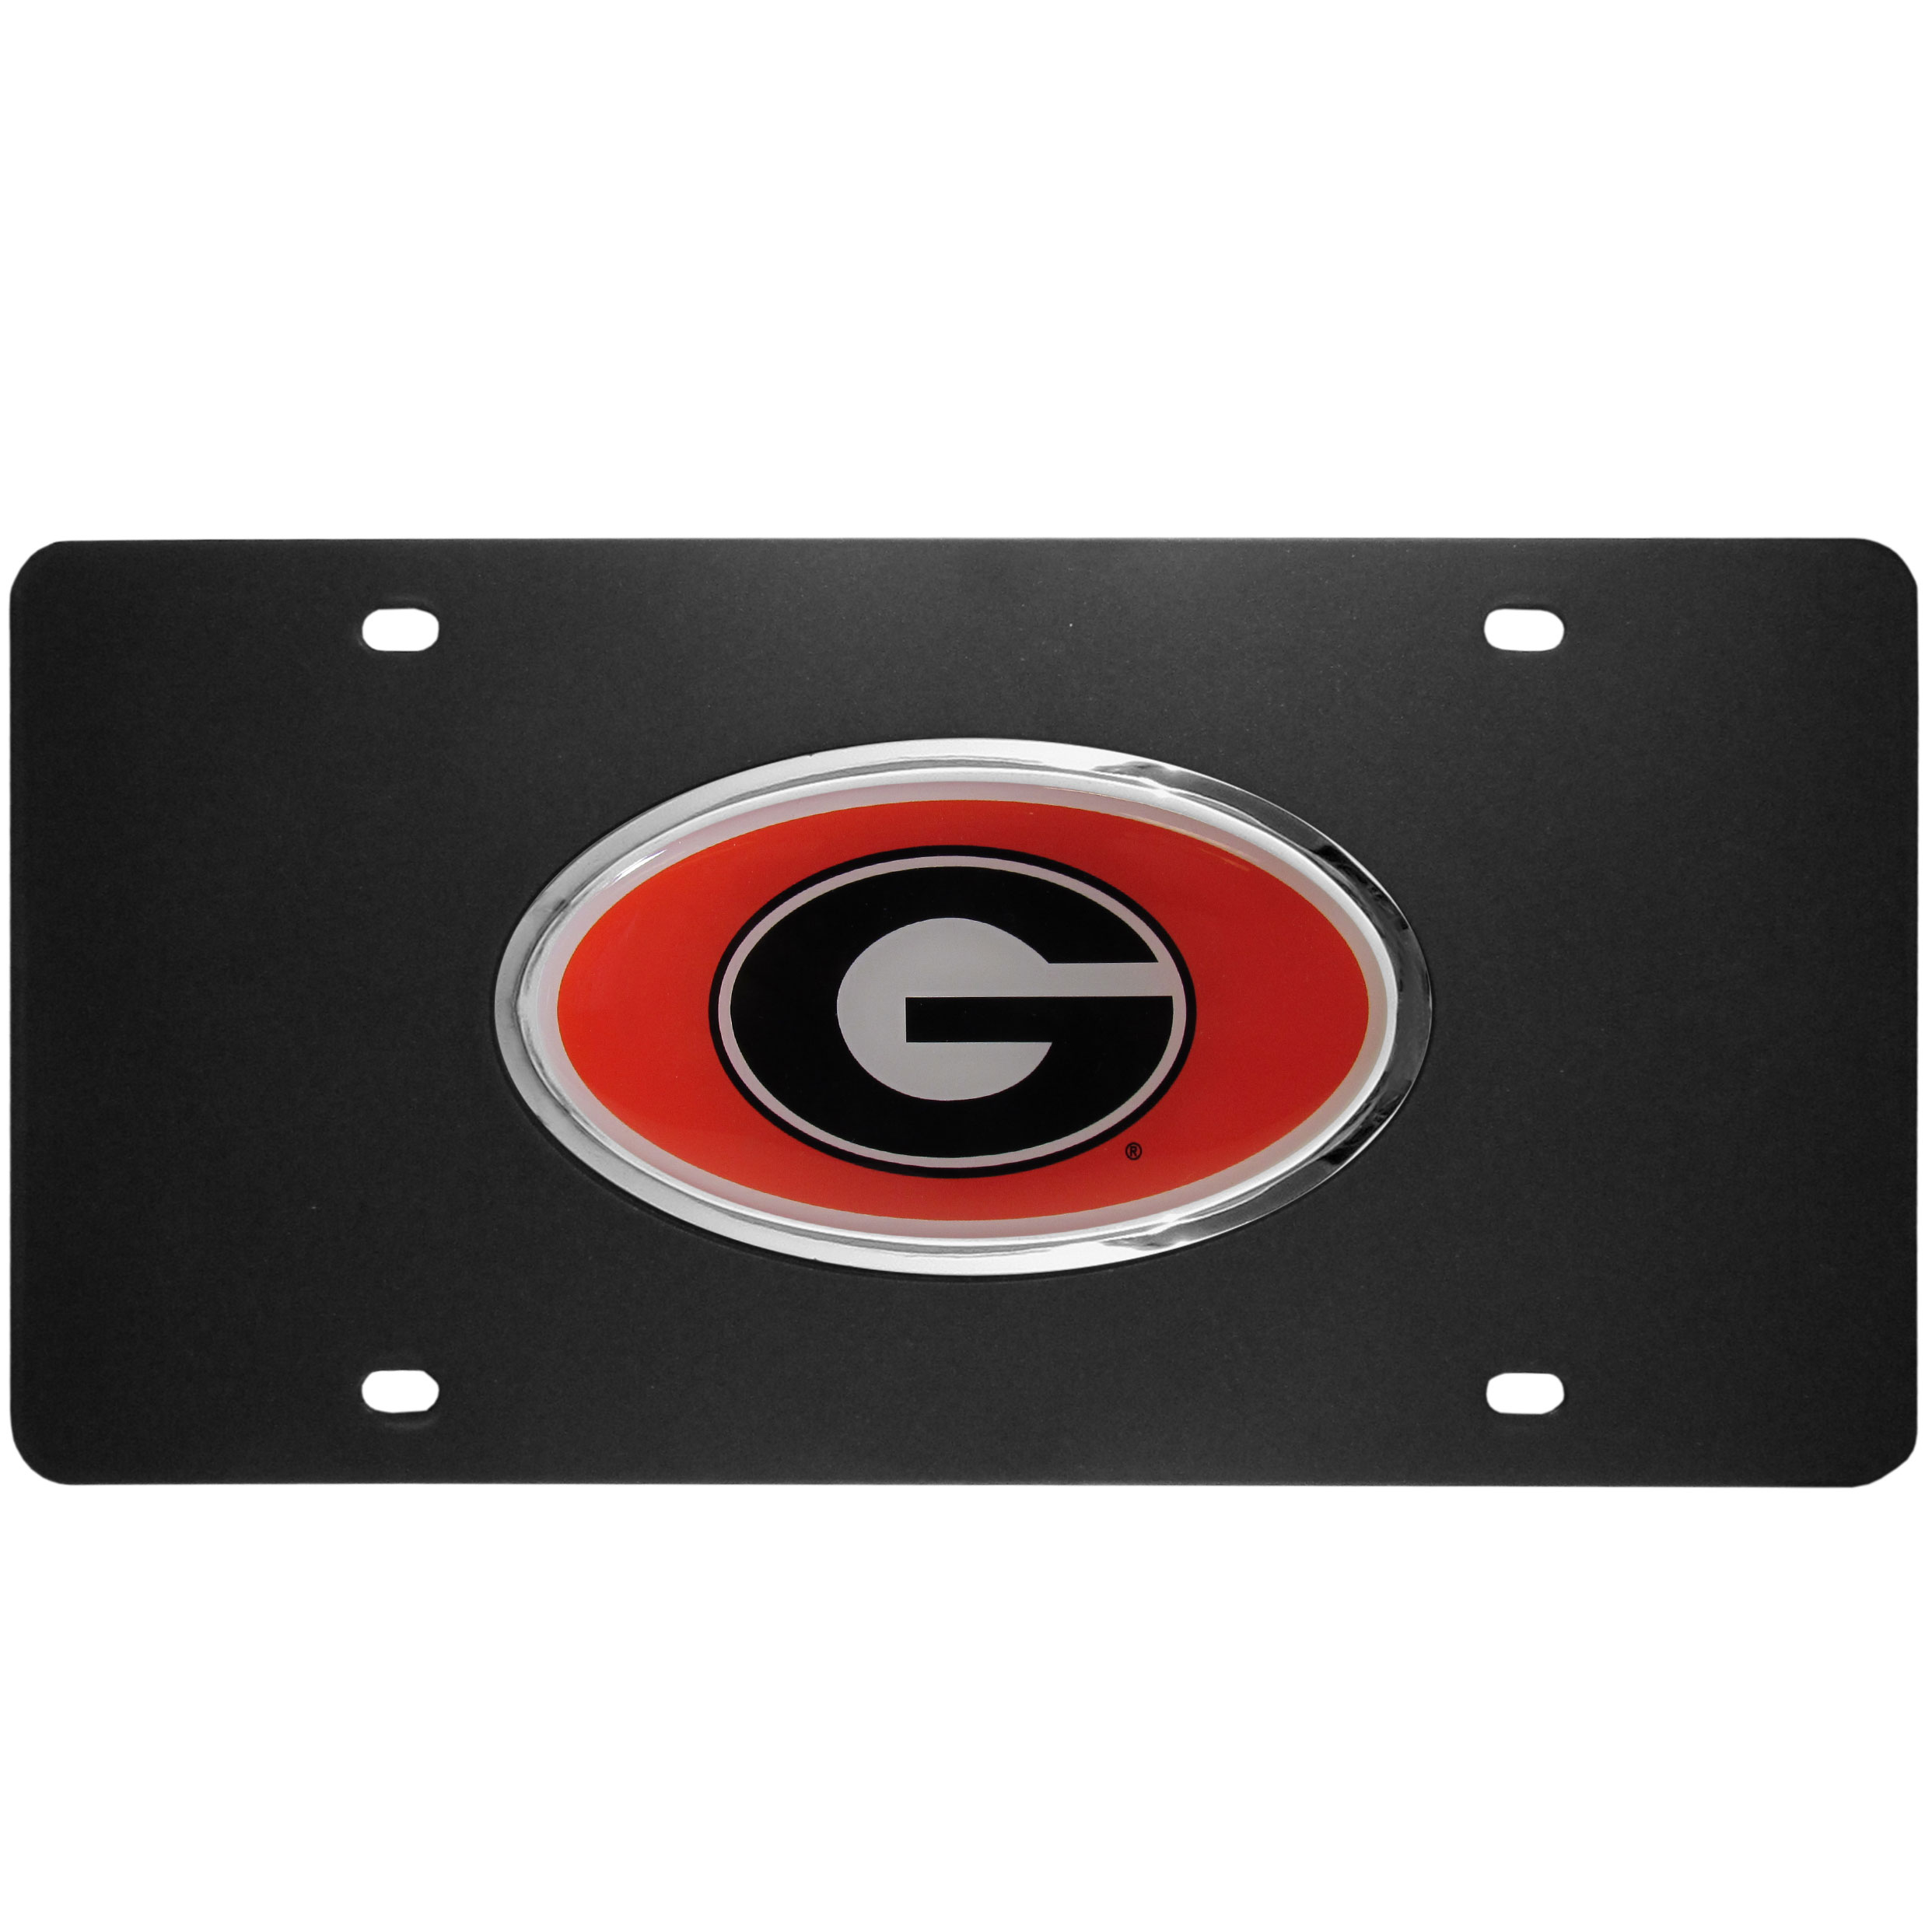 Georgia Bulldogs Acrylic License Plate - Our Georgia Bulldogs acrylic license plate is a step above the rest. It is made of thick, durable acrylic with a matte black finish and raised chrome saddle for the extra large team emblem.